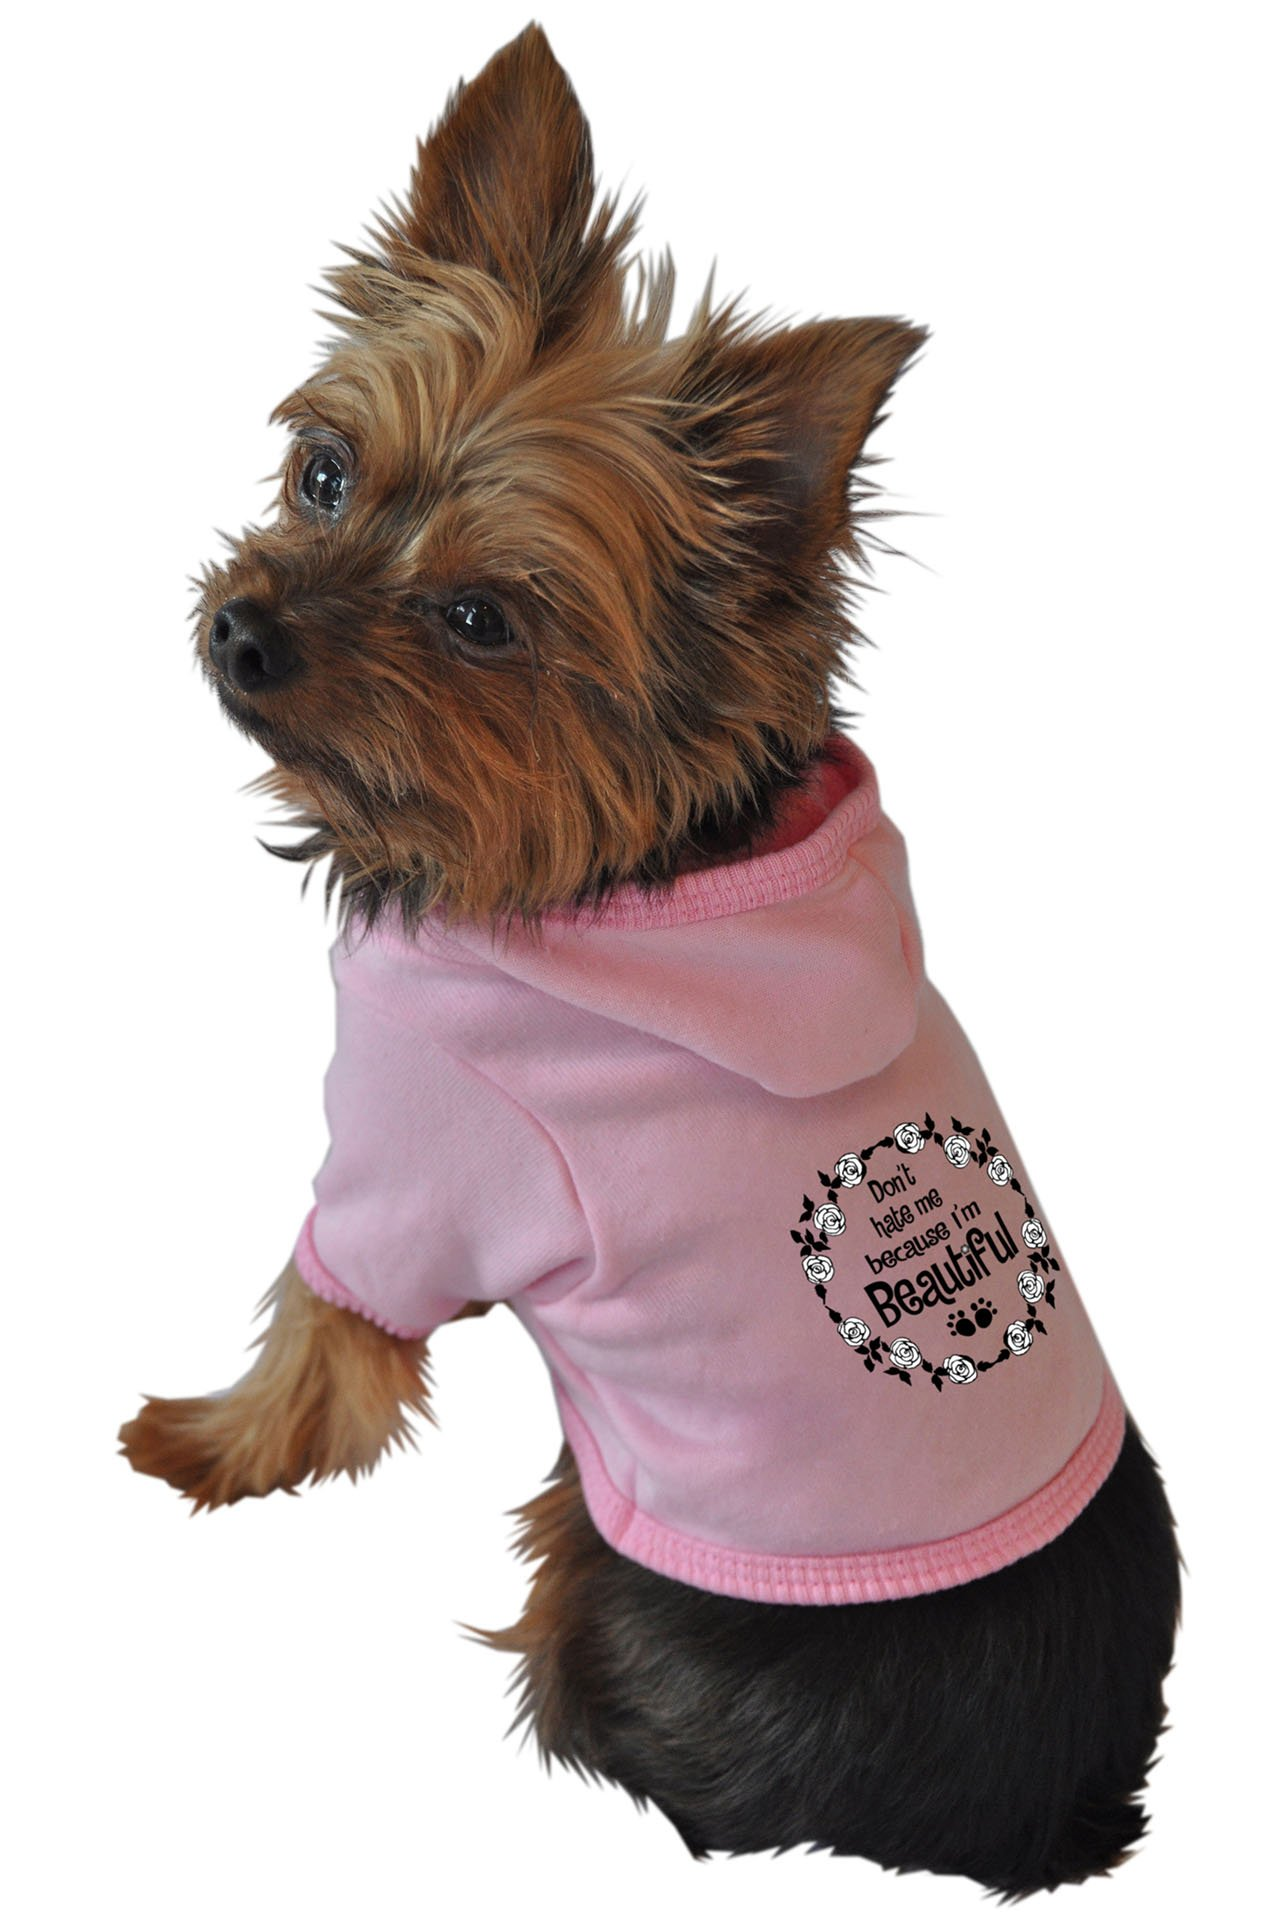 Ruff Ruff and Meow Dog Hoodie, Dont Hate Me Because Im Beautiful, Pink, Small